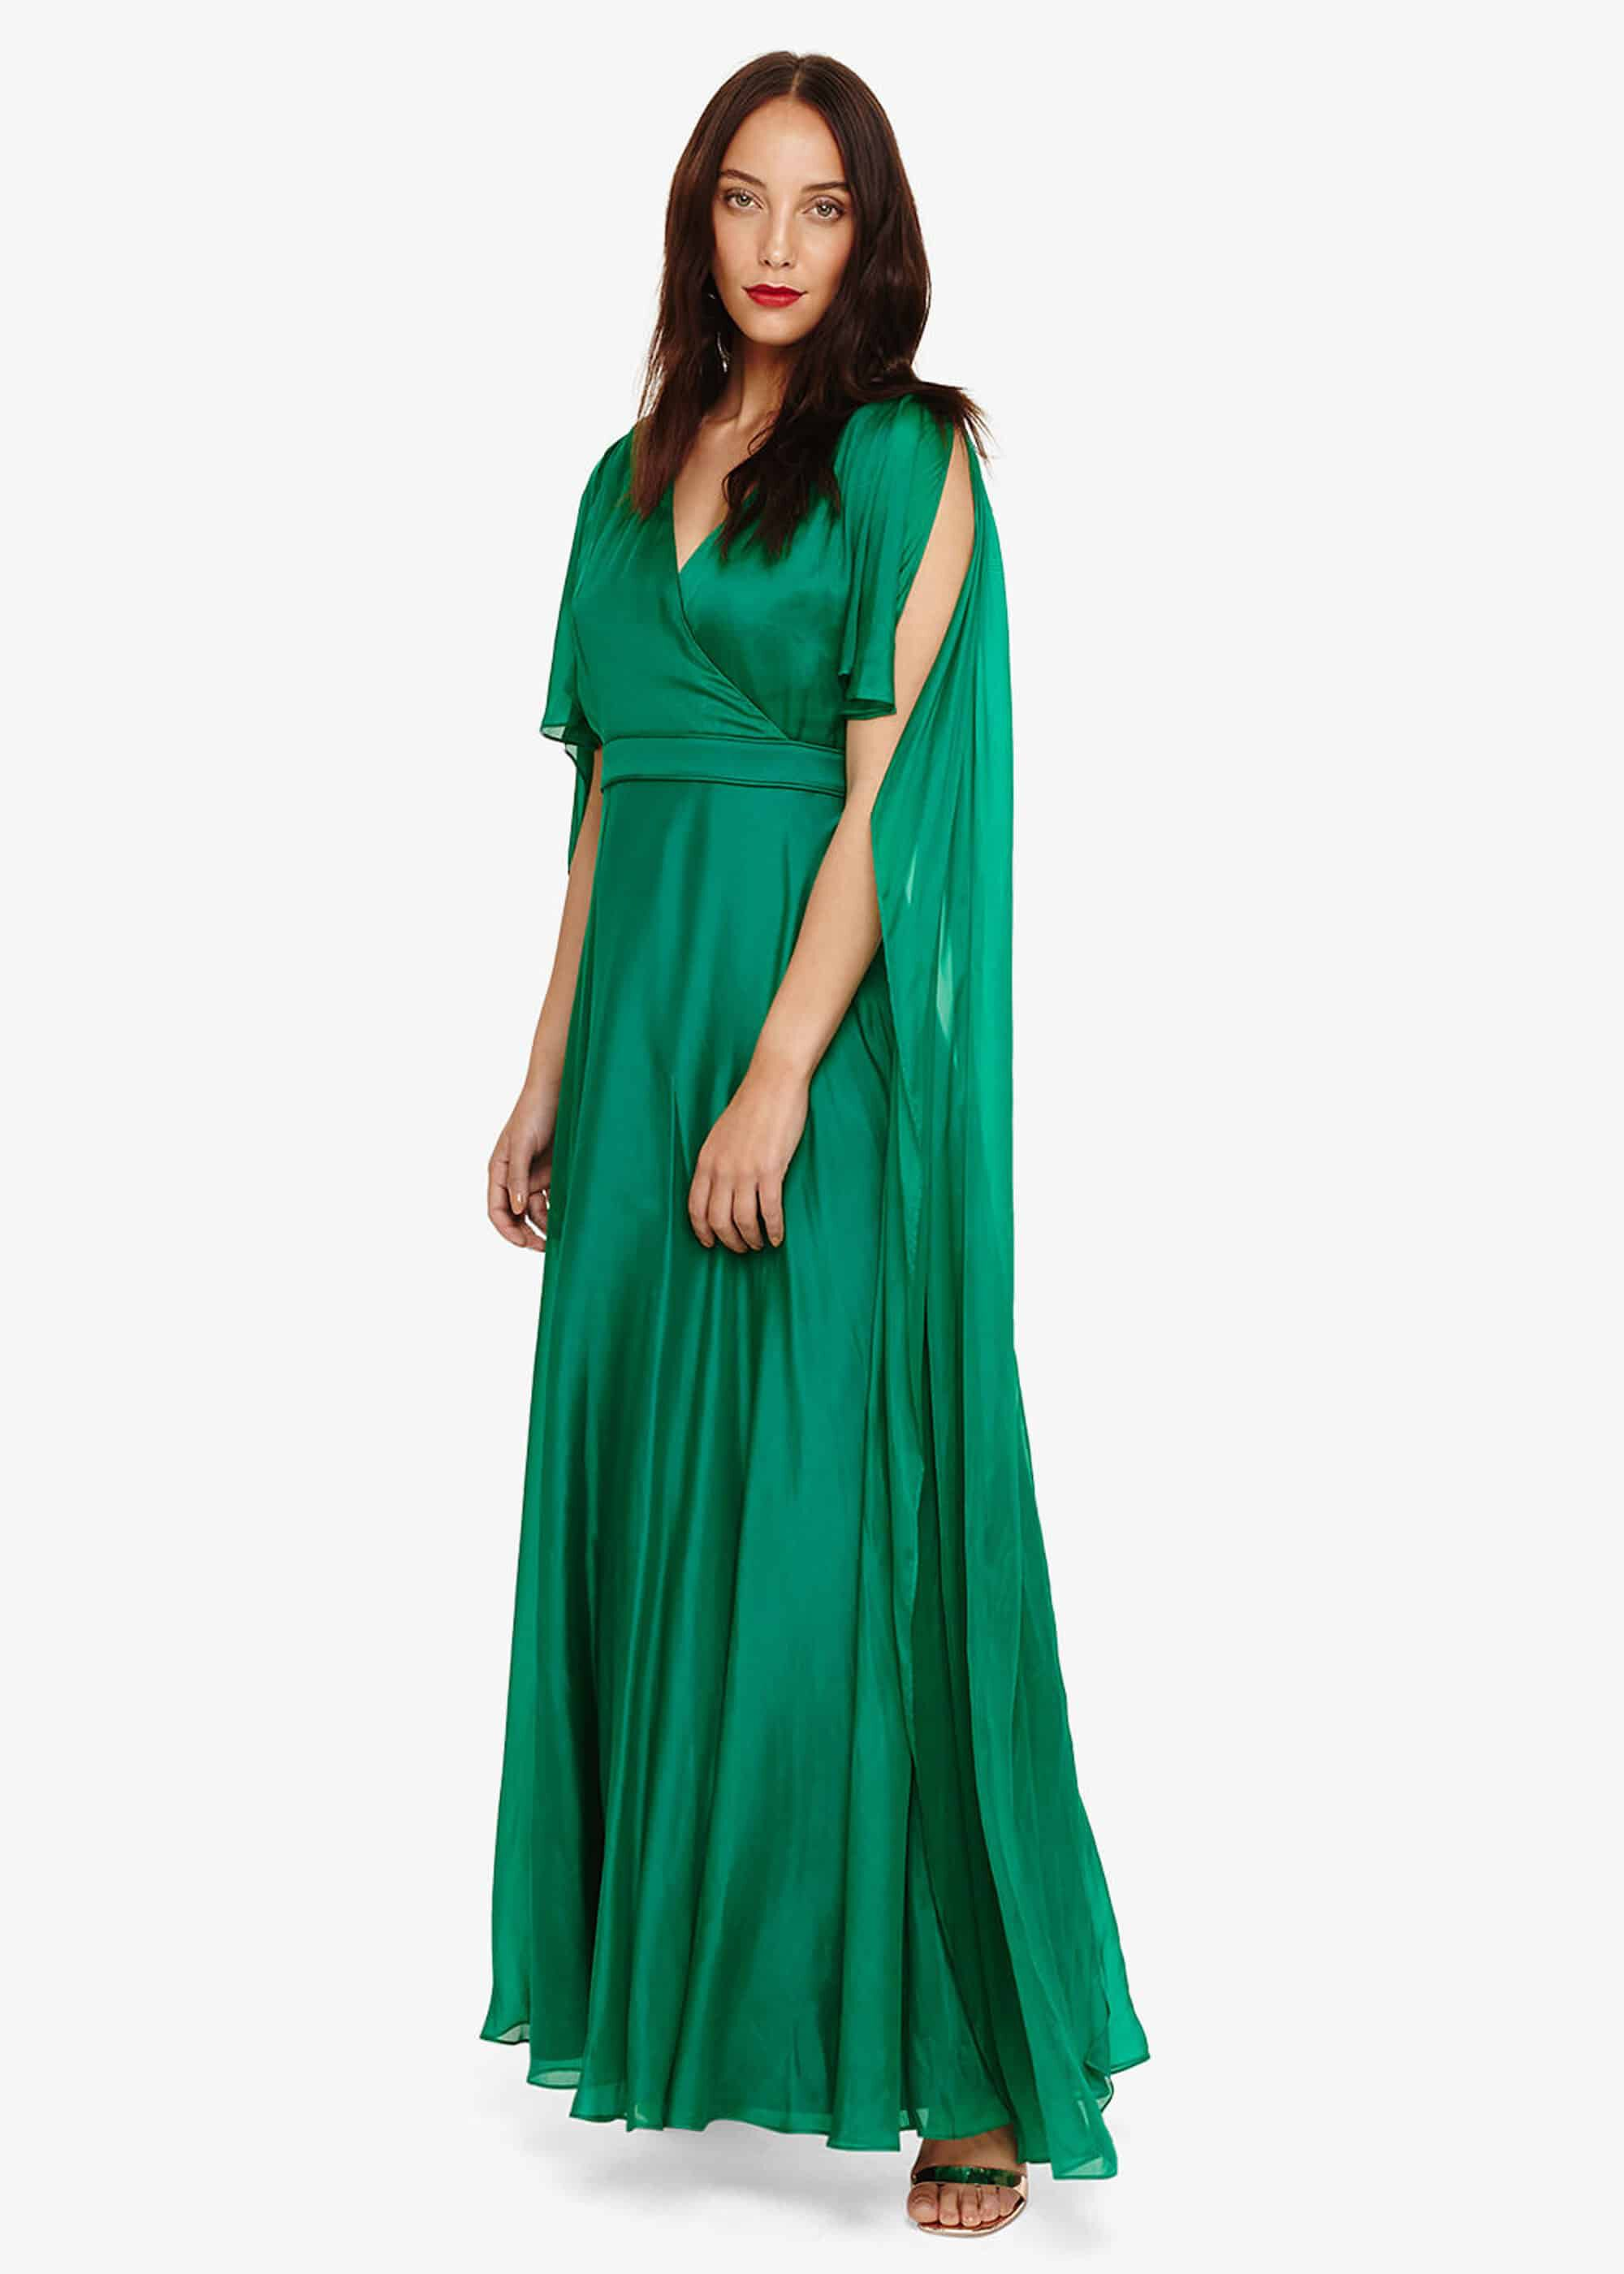 Phase Eight Arwen Silk Drape Dress, Green, Maxi